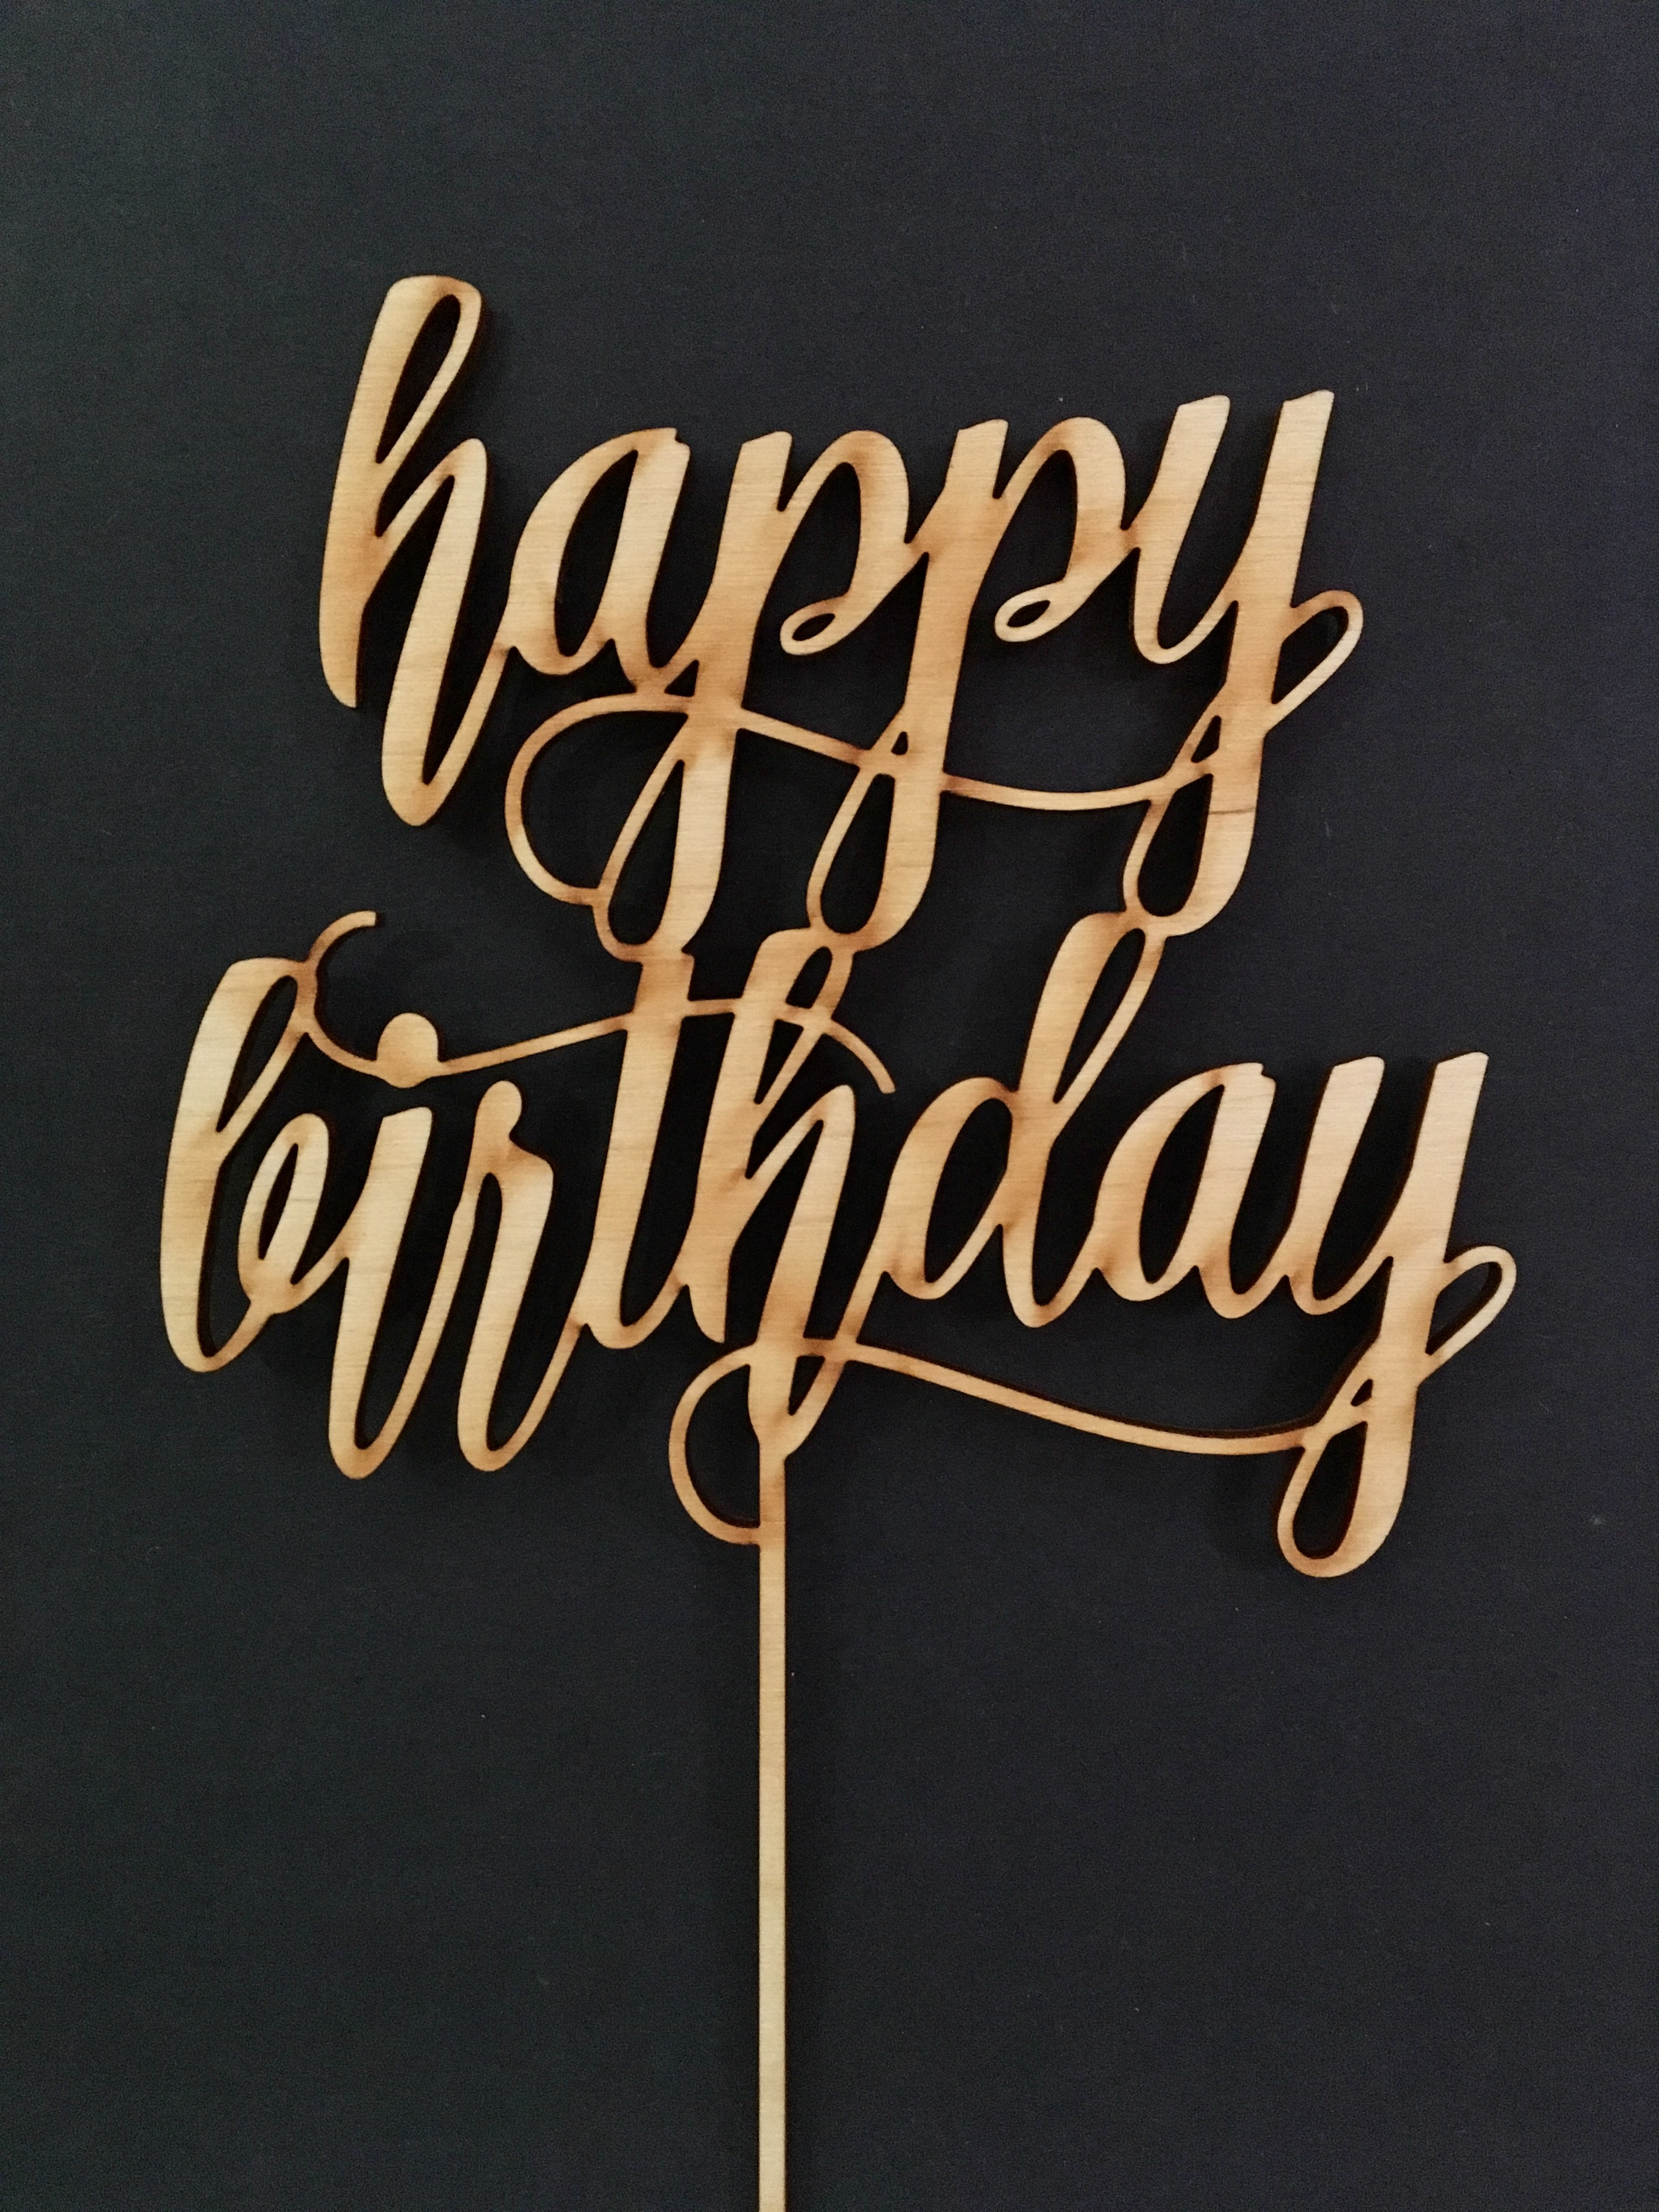 Happy Birthday Cake Topper 32 For Birch Wood And 40 Gold Or Silver Mirror Available In Any Color Option Fits Atop A 6 Tier